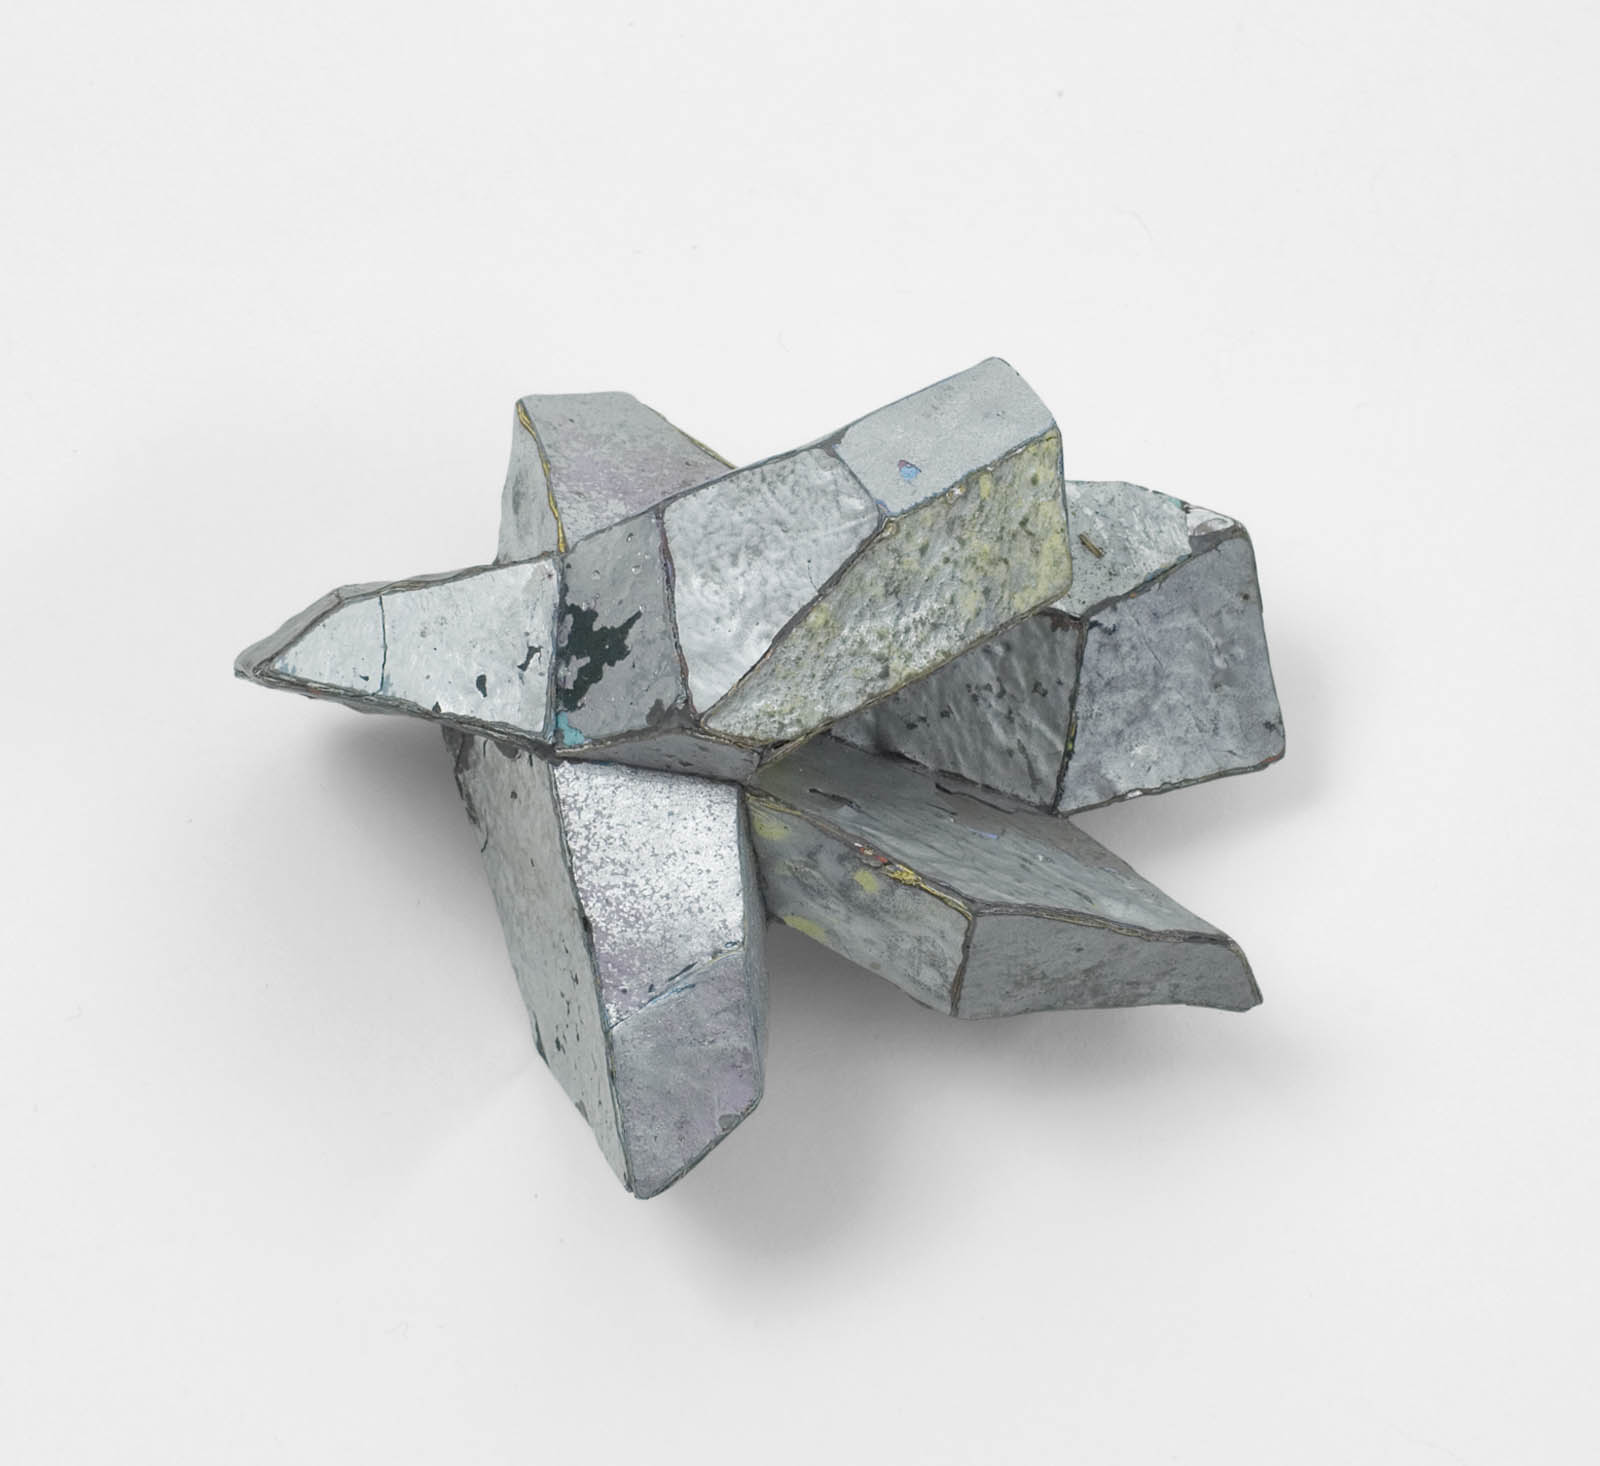 """Silver"" I Brooch, 2011 I Graffiti, silver, stainless steel I Photo: Mirei Takeuchi"